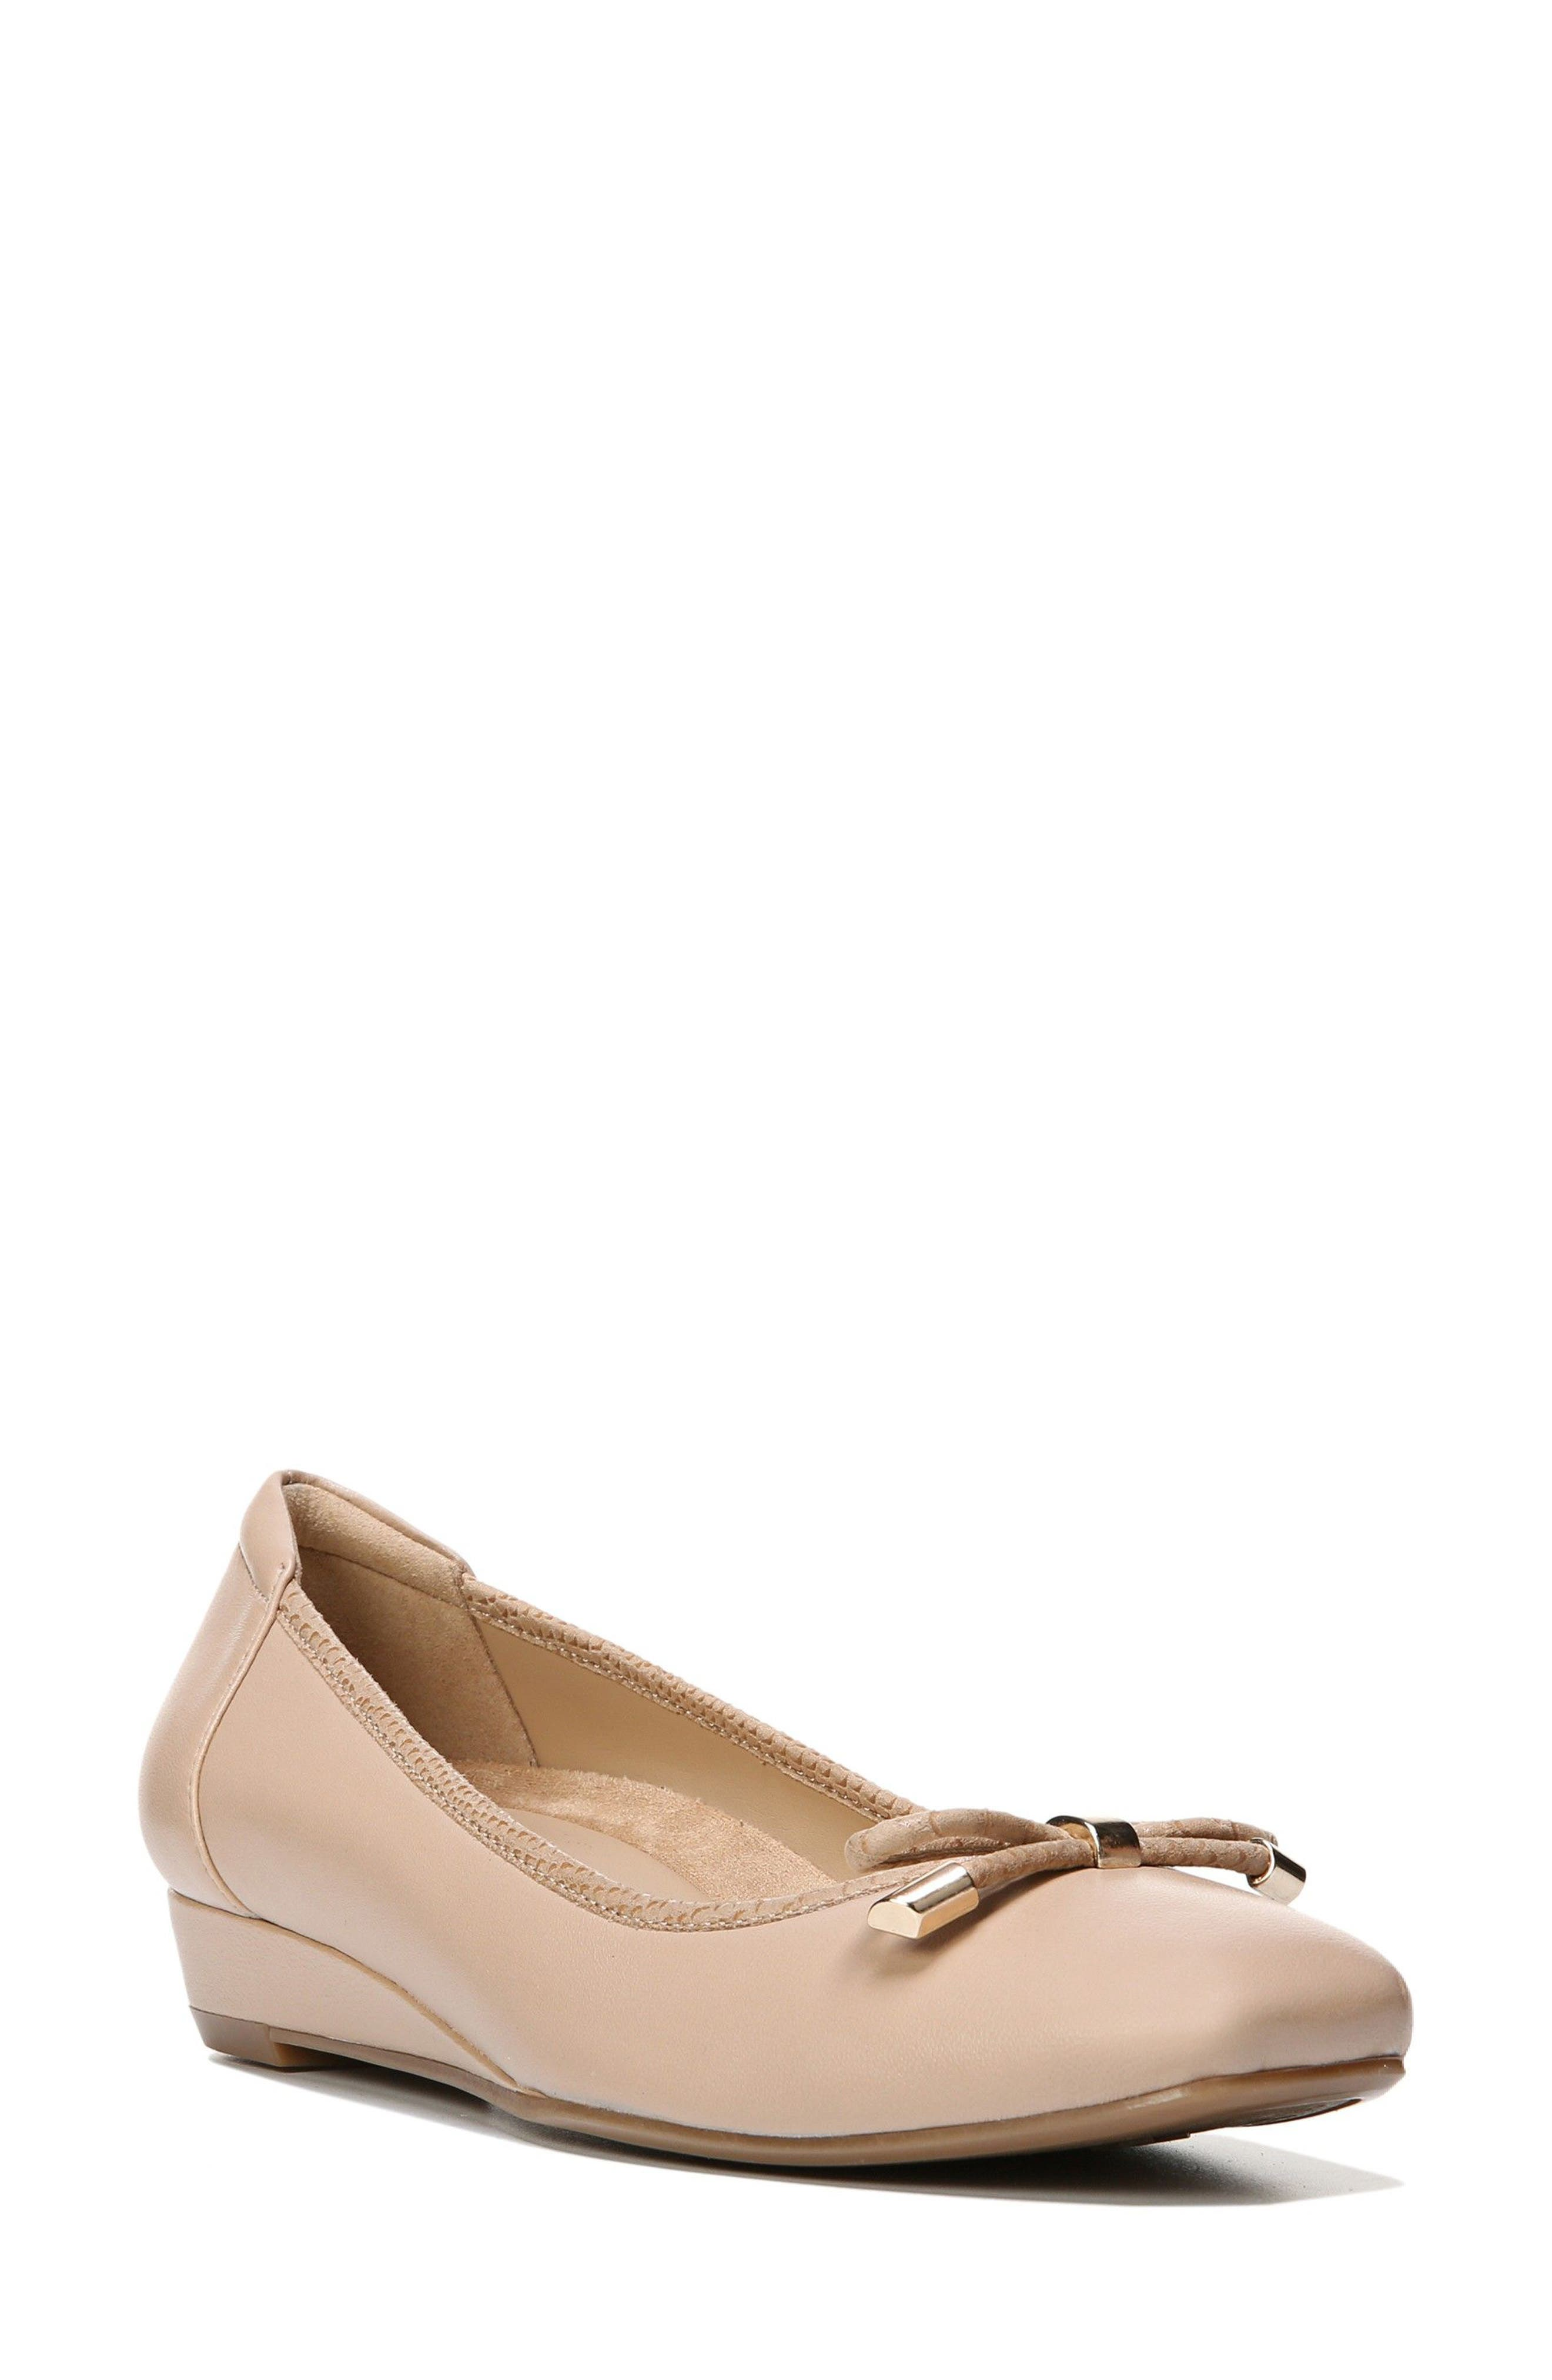 'Dove' Wedge,                         Main,                         color, 401